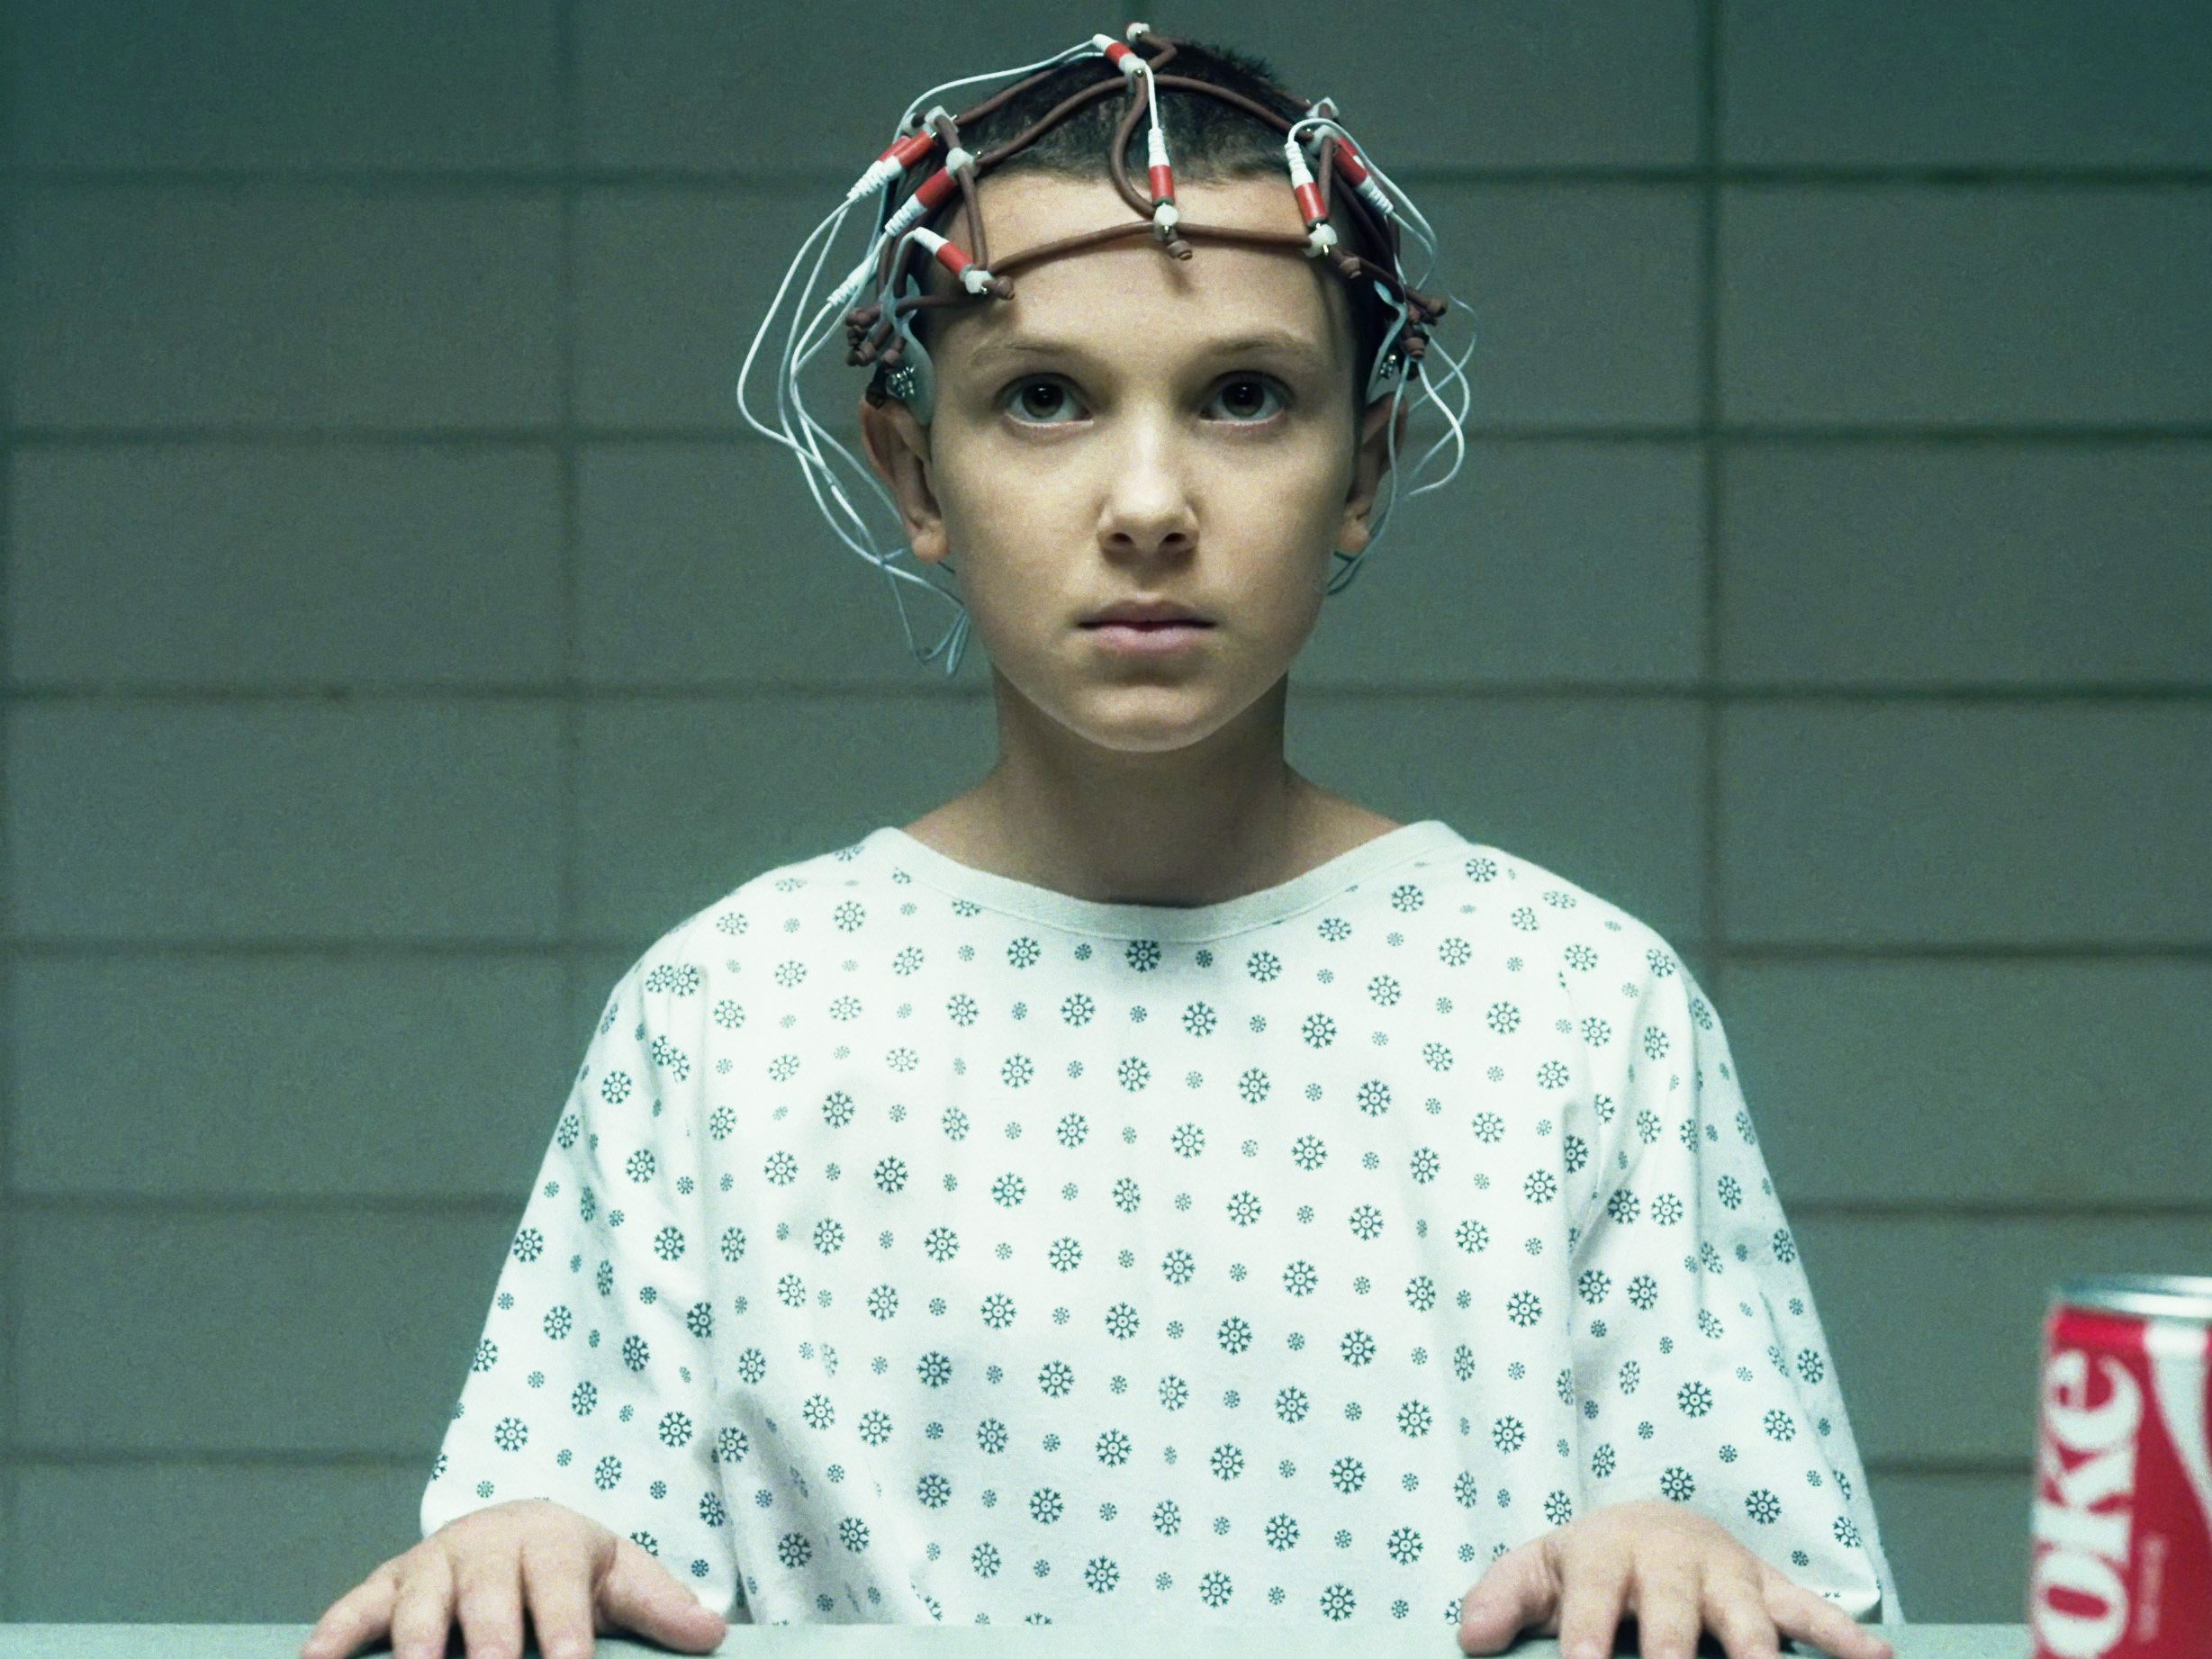 Stranger Things created a starlet in Millie Bobby Brown in 2016